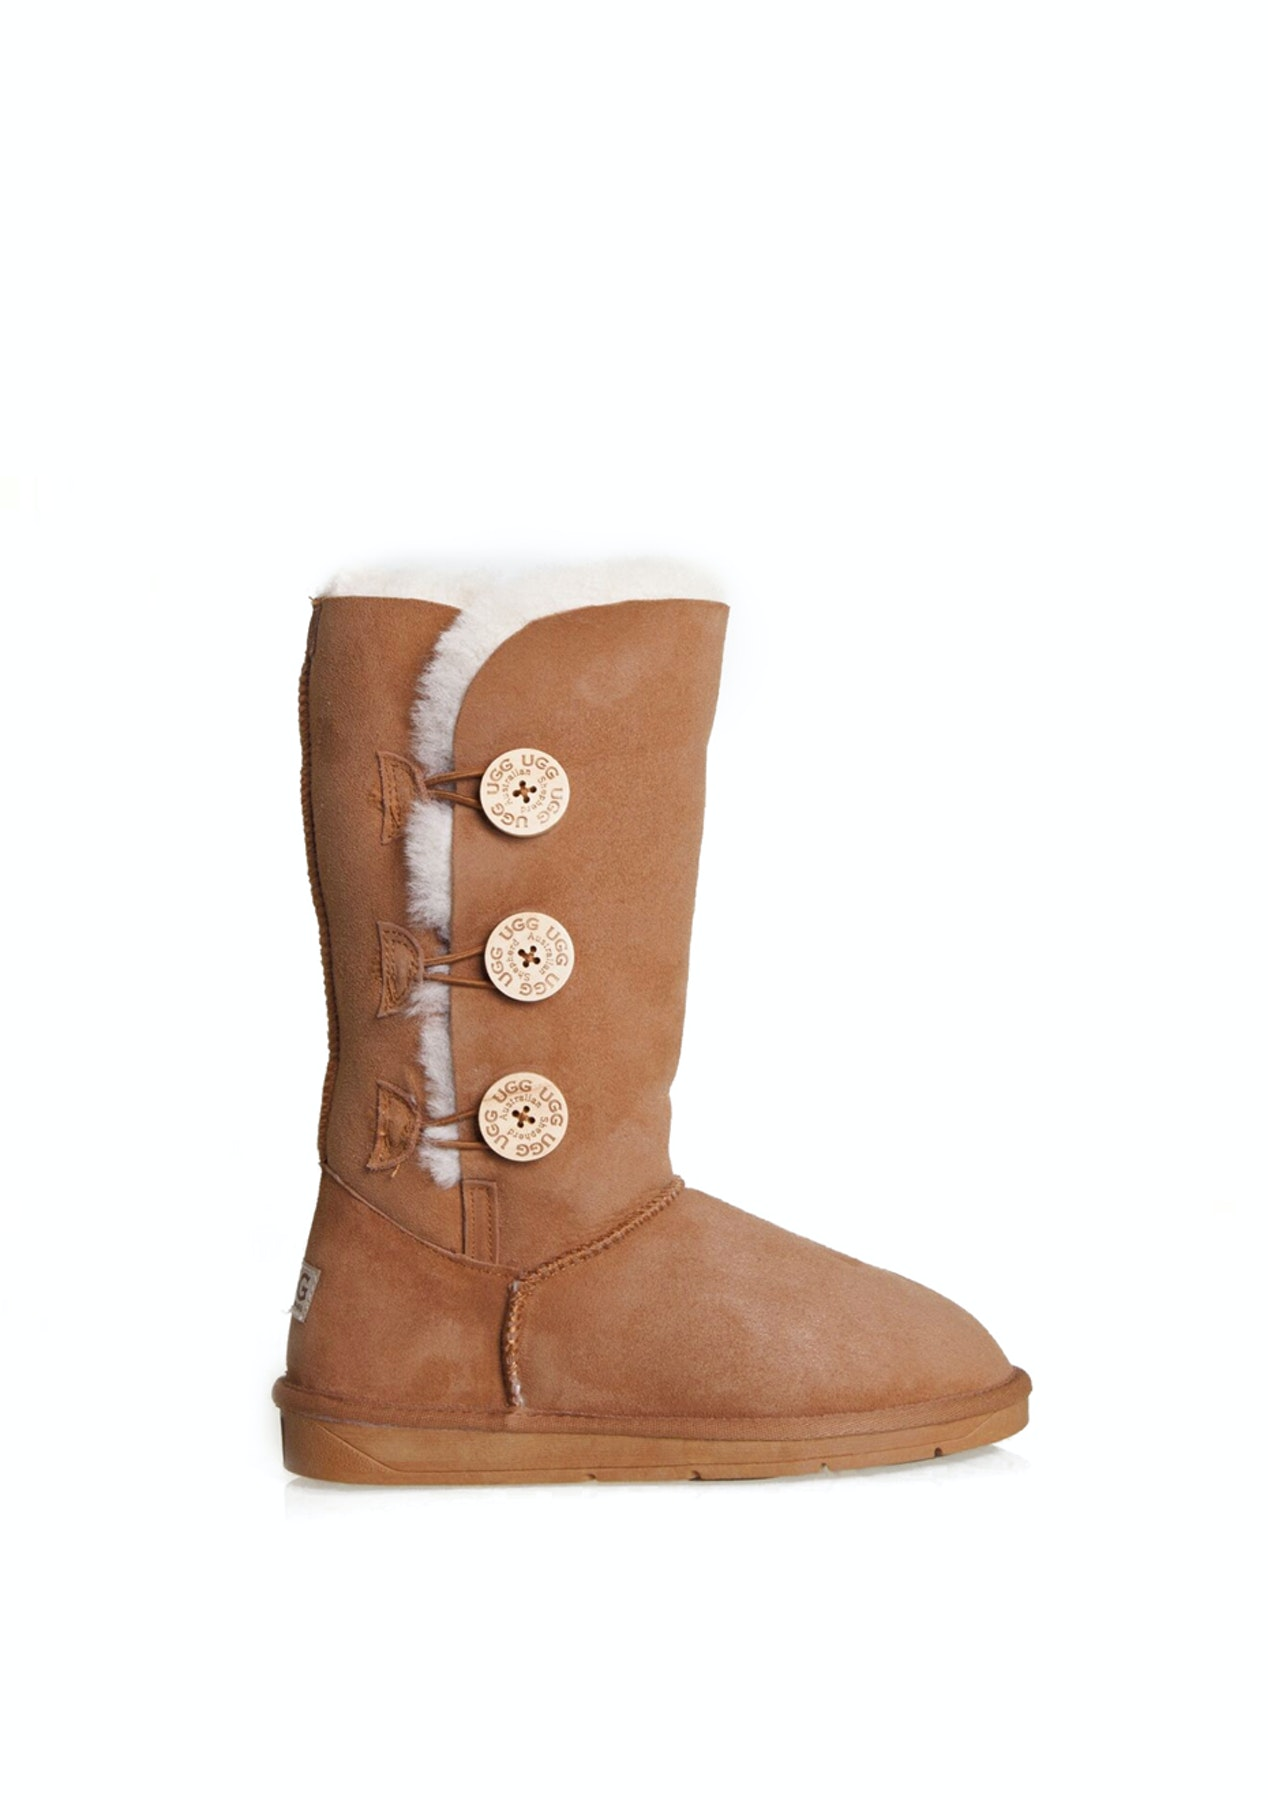 1c8061ccd1a Australian Shepherd Ugg - Tall button - Chestnut